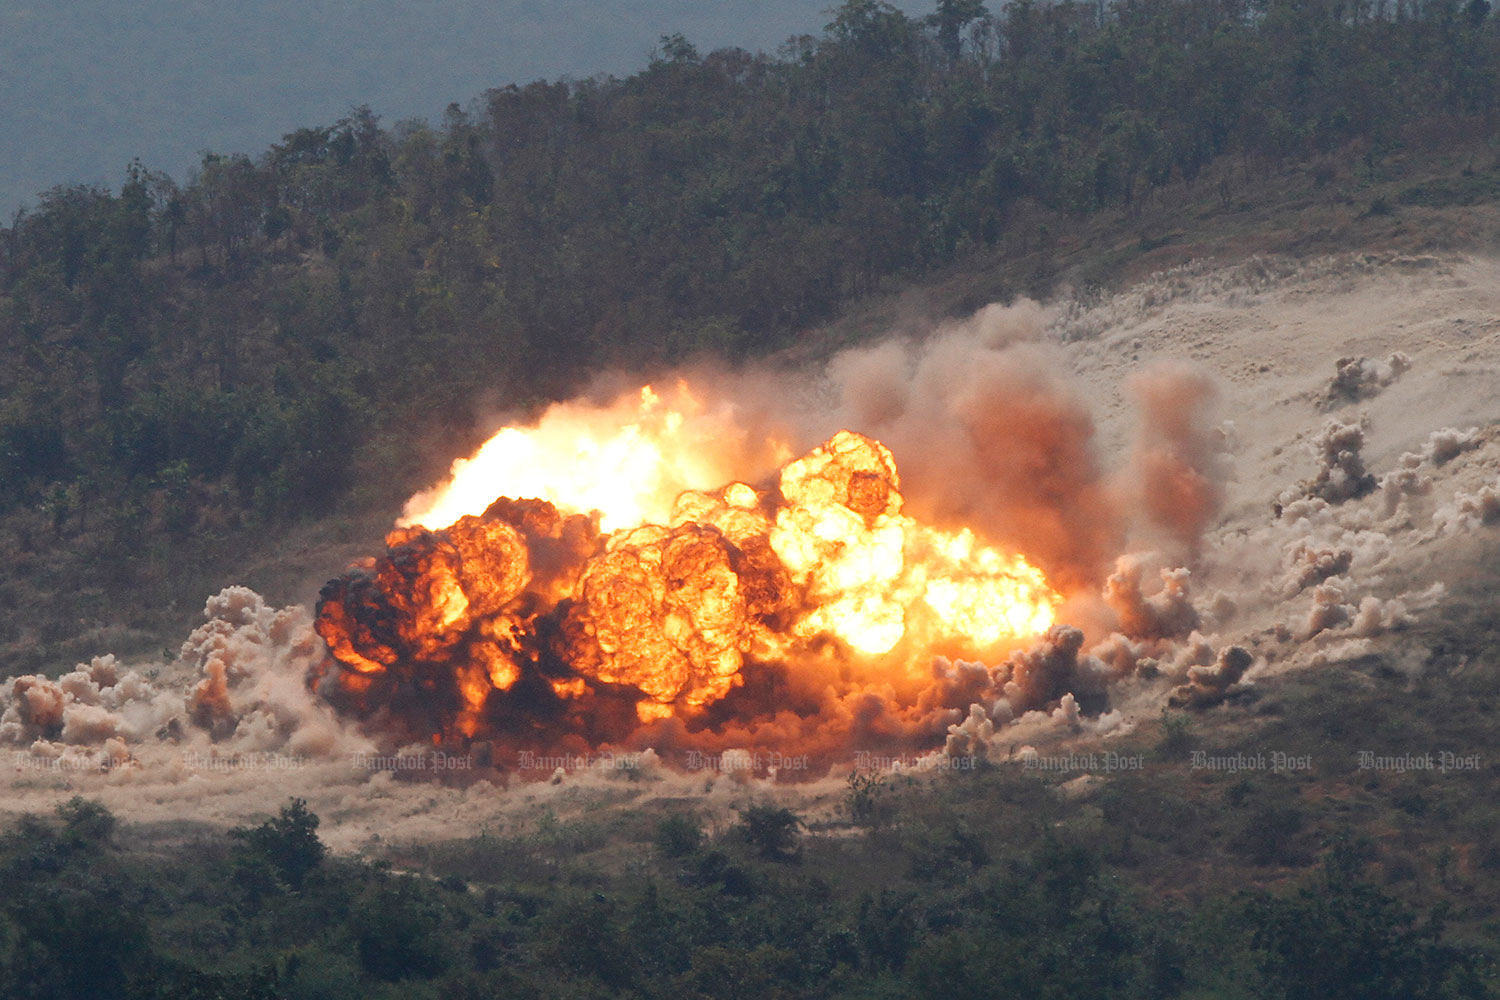 Exporters sign up to anti-WMD proliferation trade controls